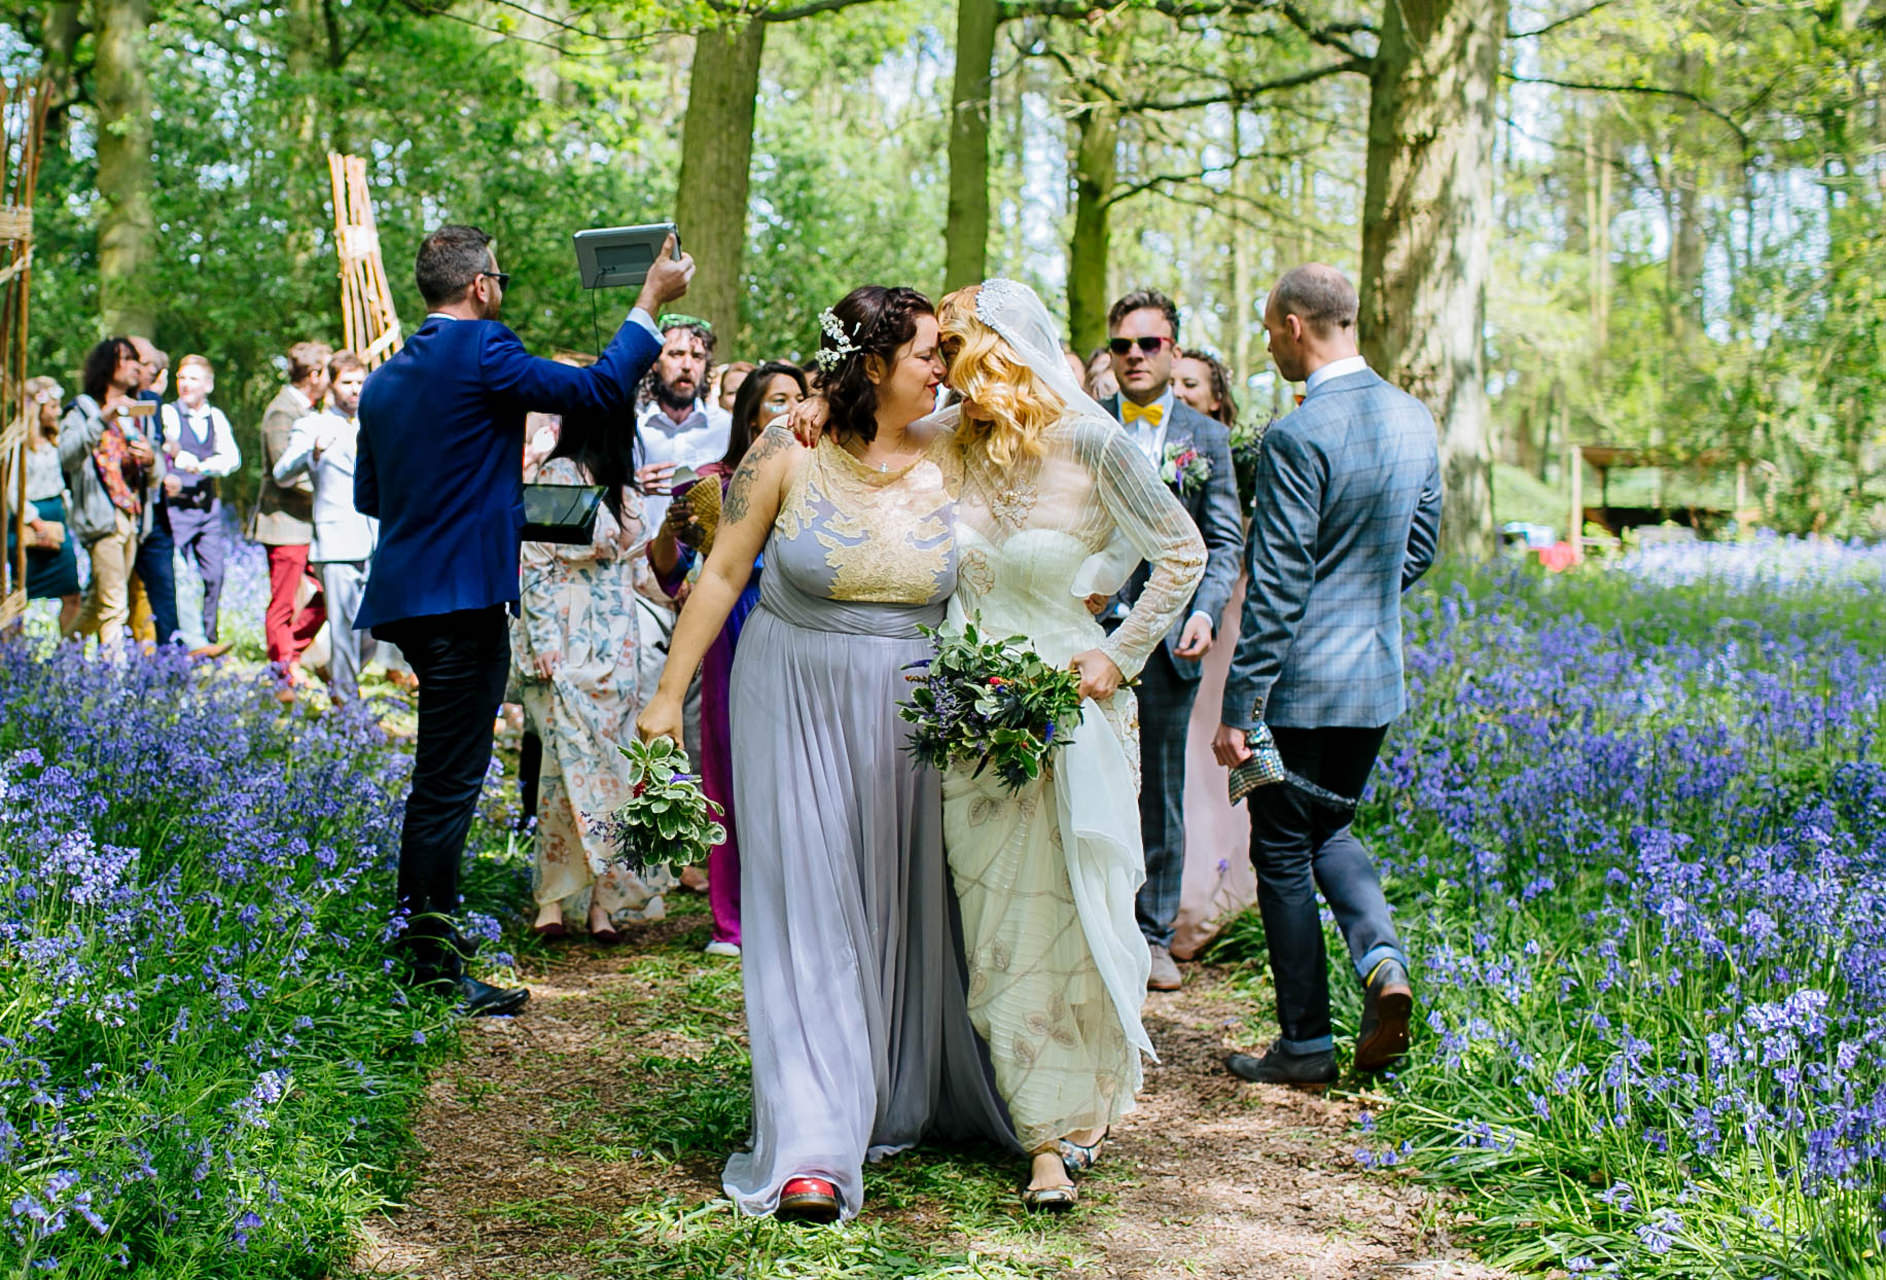 festival-themed-wedding-wildwood-bluebell